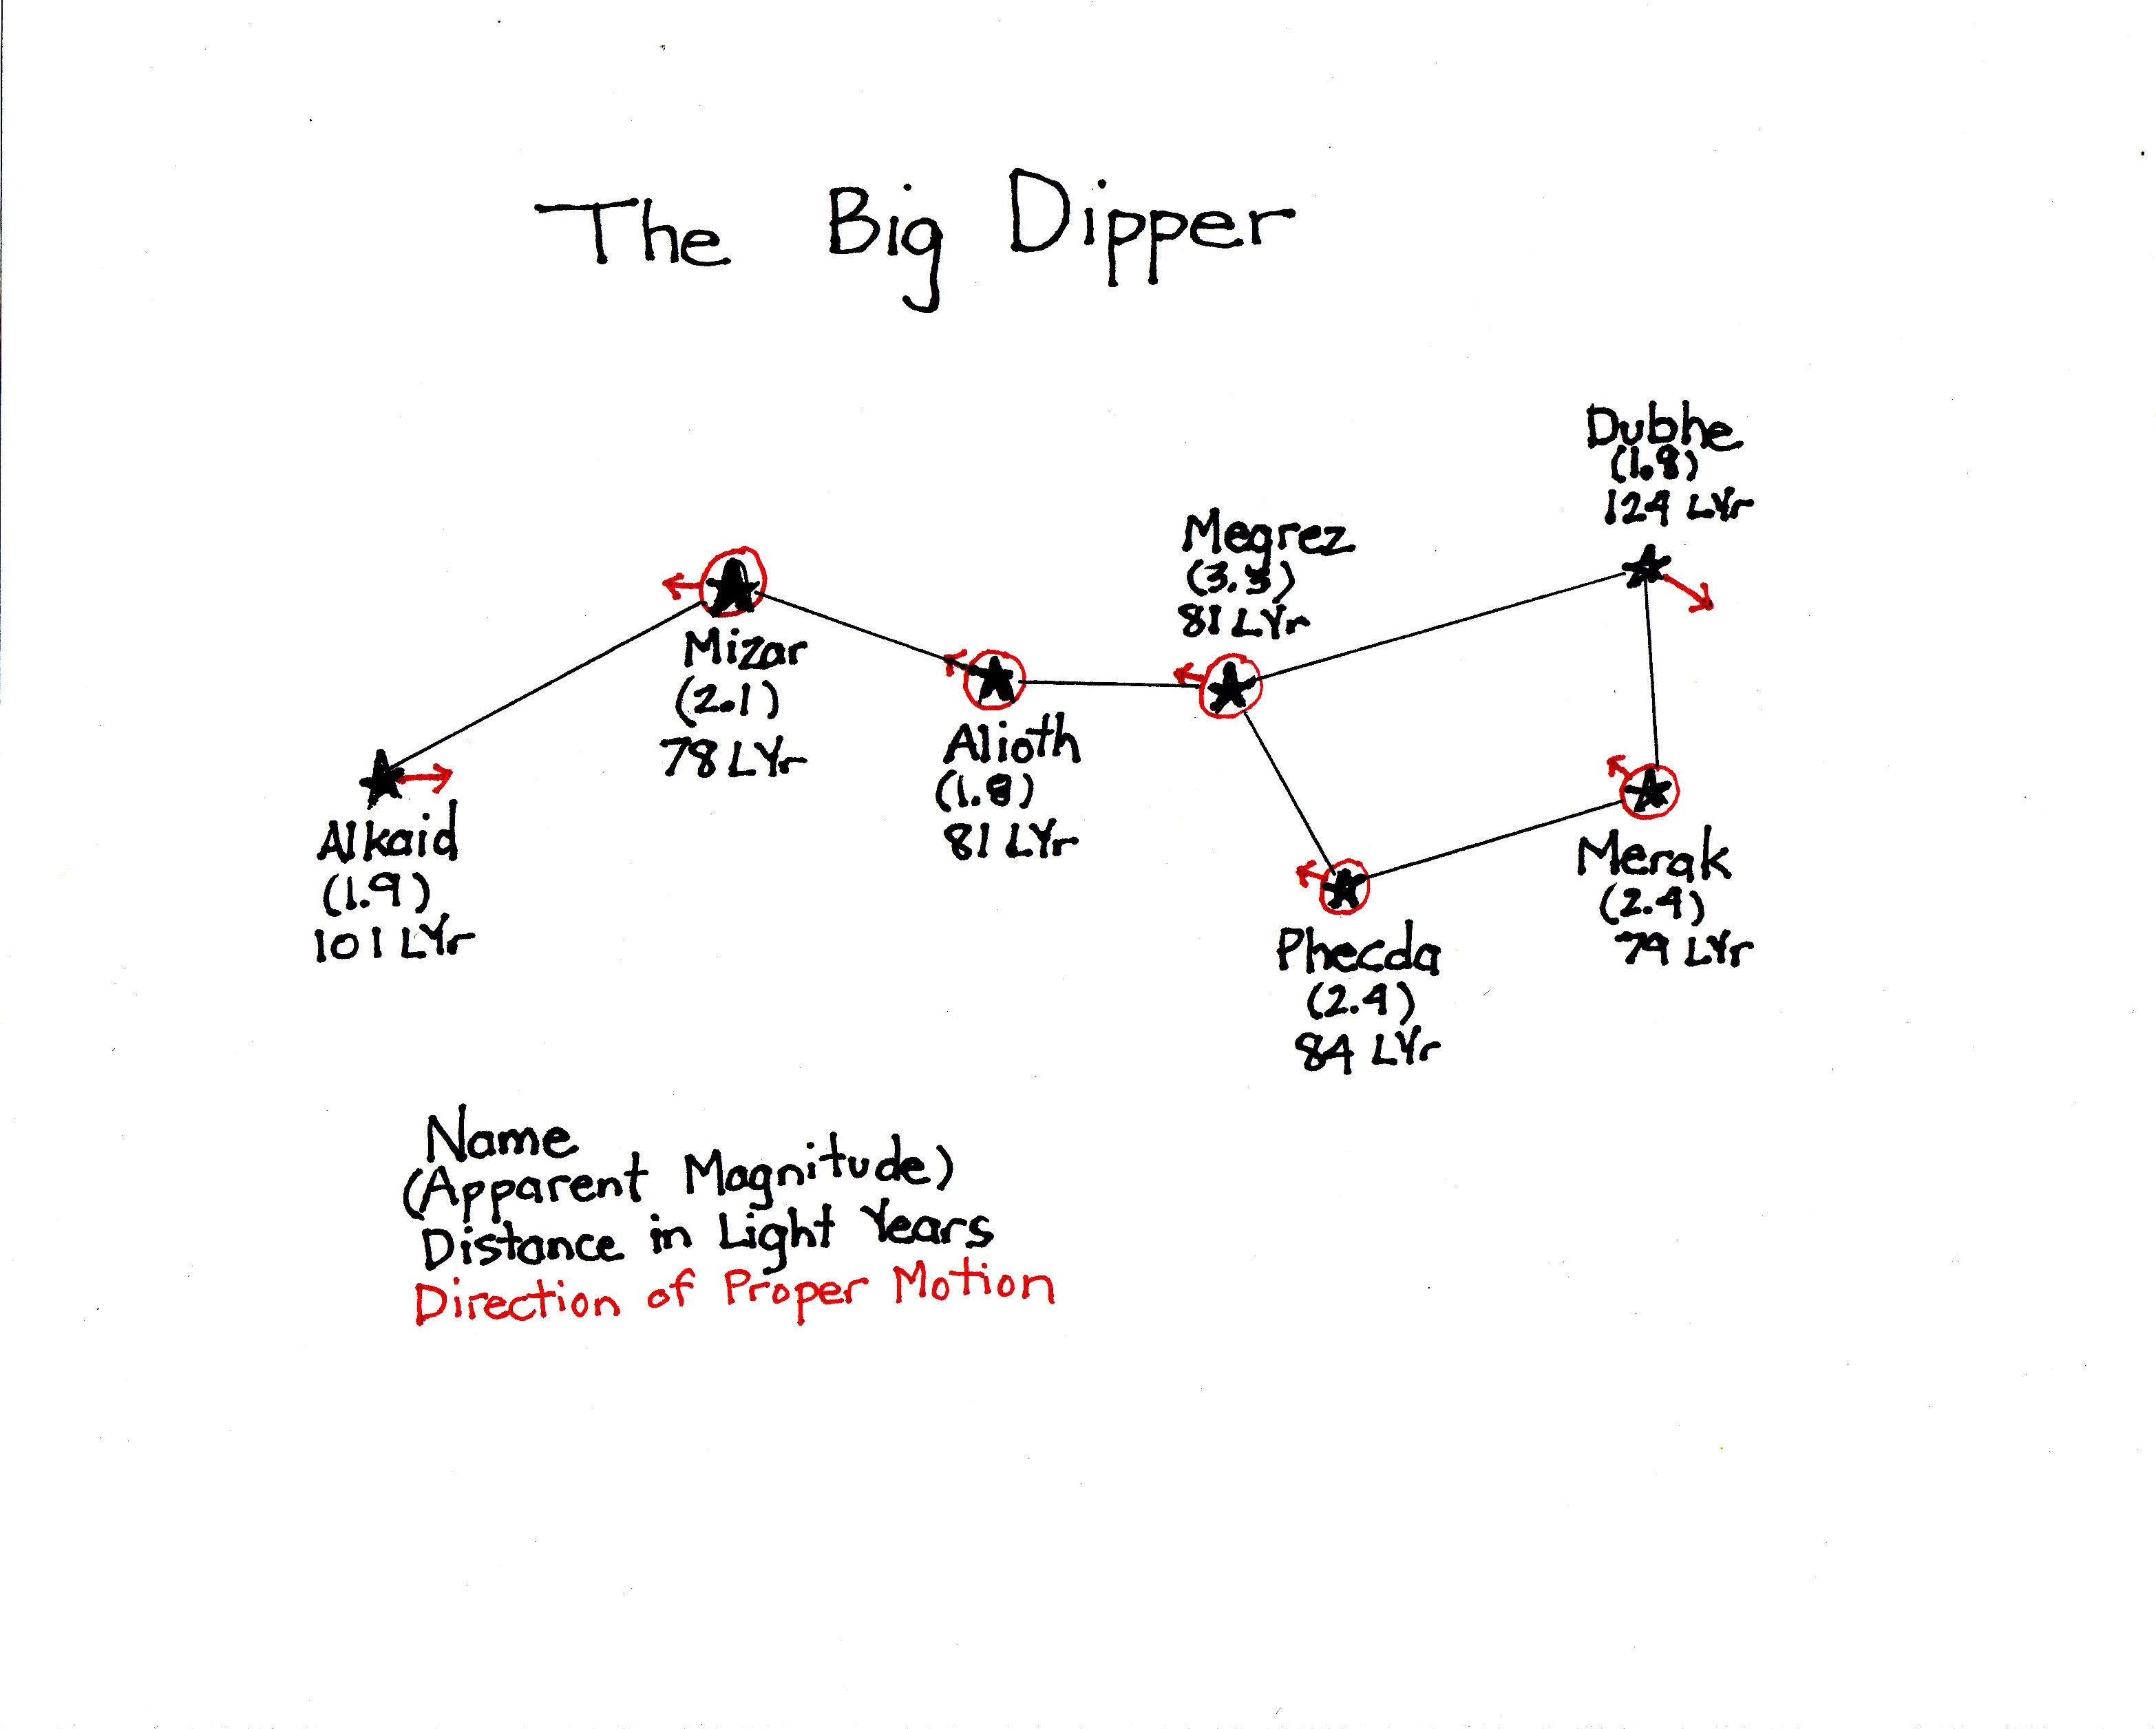 The Big Dipper Star Brightness And Movement